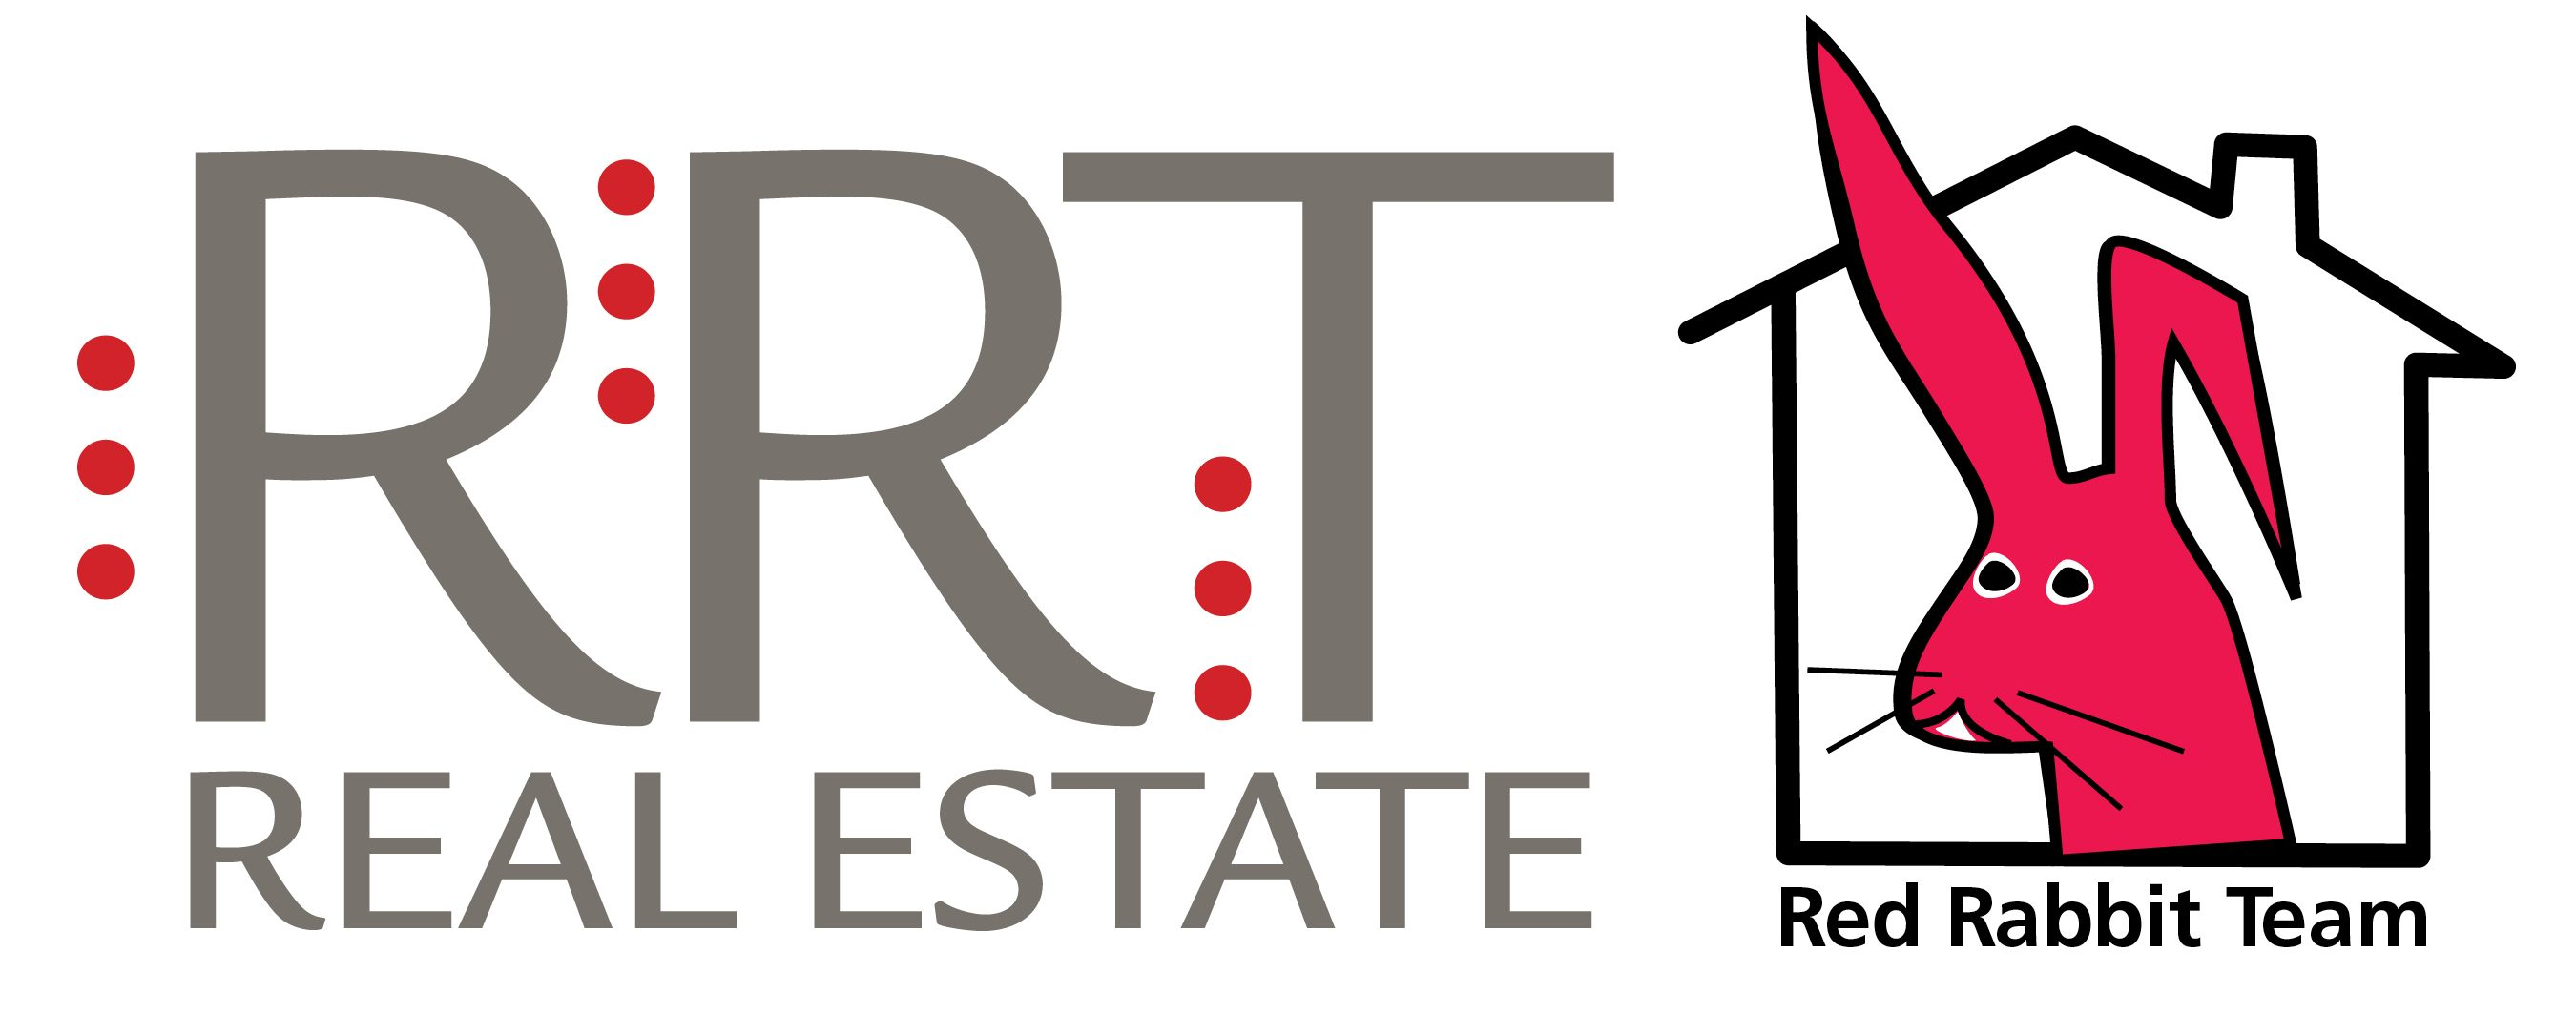 RRT Real Estate – Atlanta's Red Rabbit Team